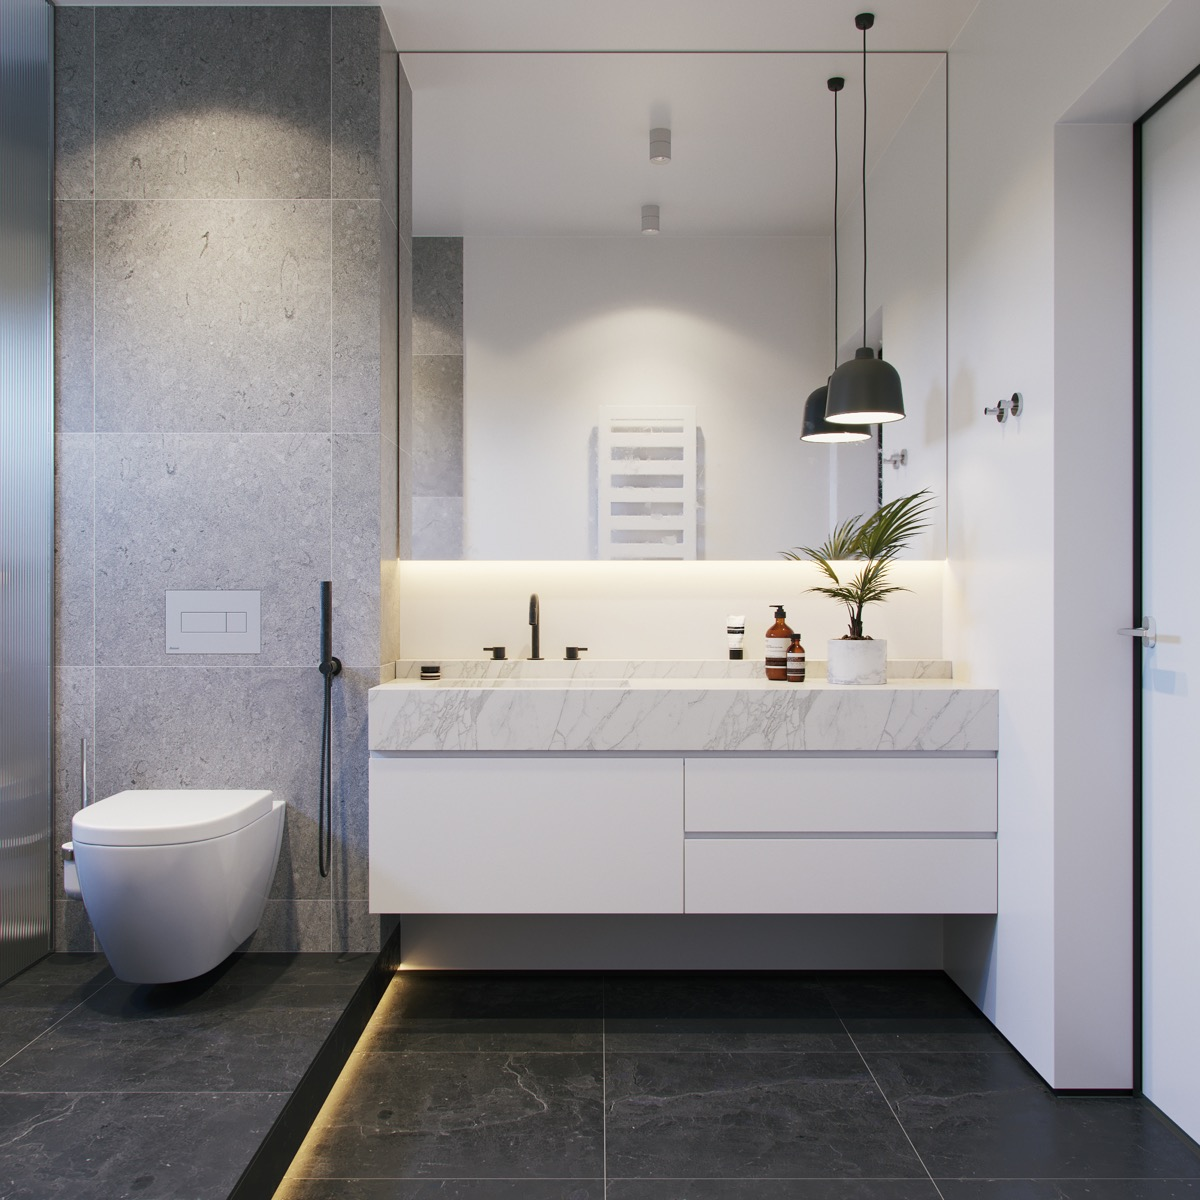 Merveilleux 2 |; Visualizer: Alexandr Aranovich. This Grey And White Master Bathroom  Uses A Darker Floor ...